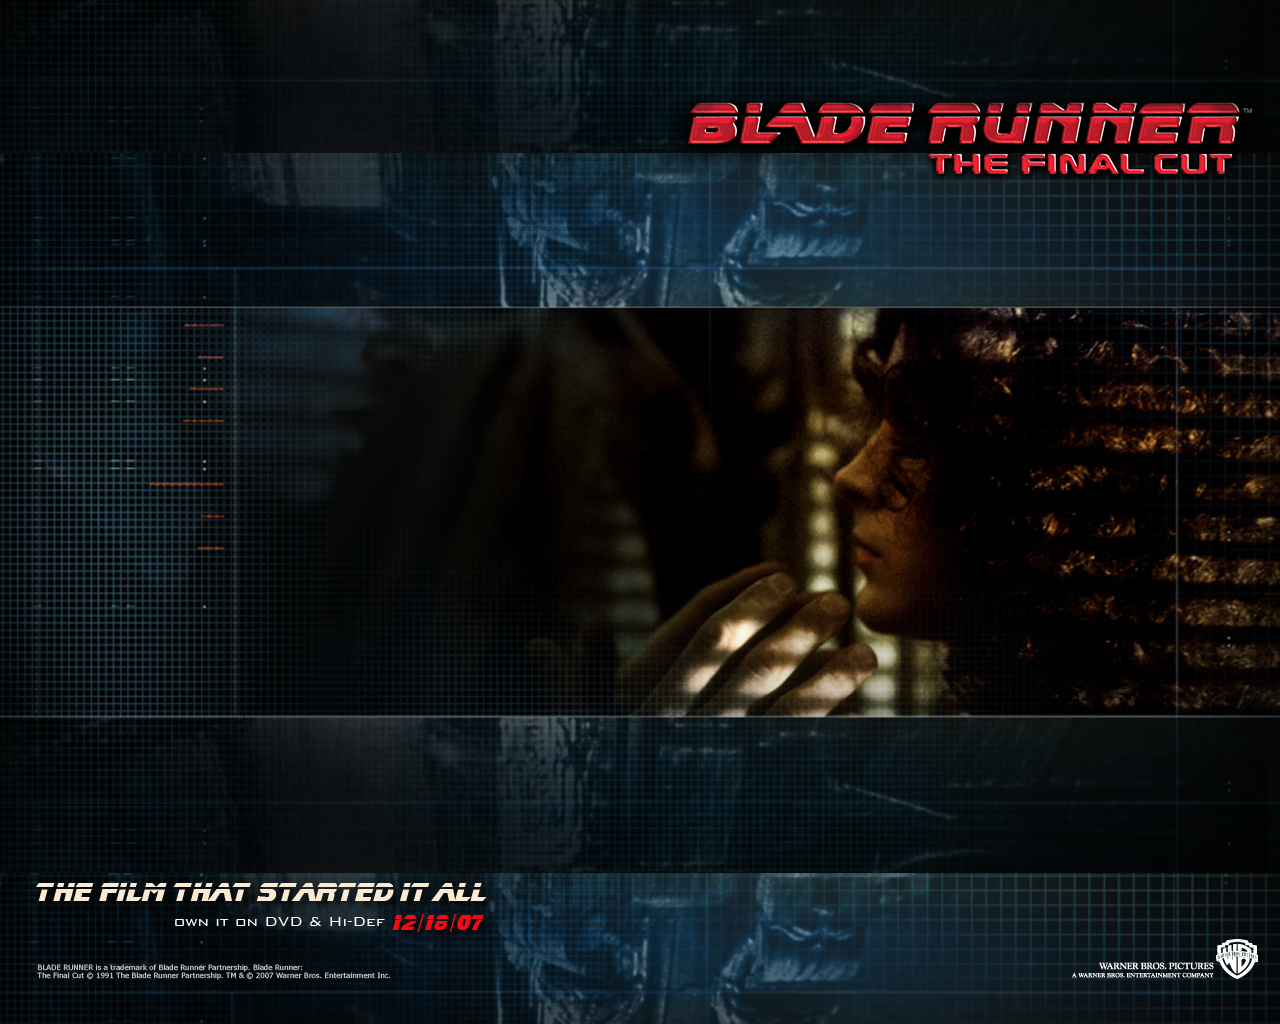 Official Blade Runner Wallpaper   Blade Runner Wallpaper 8207507 1280x1024